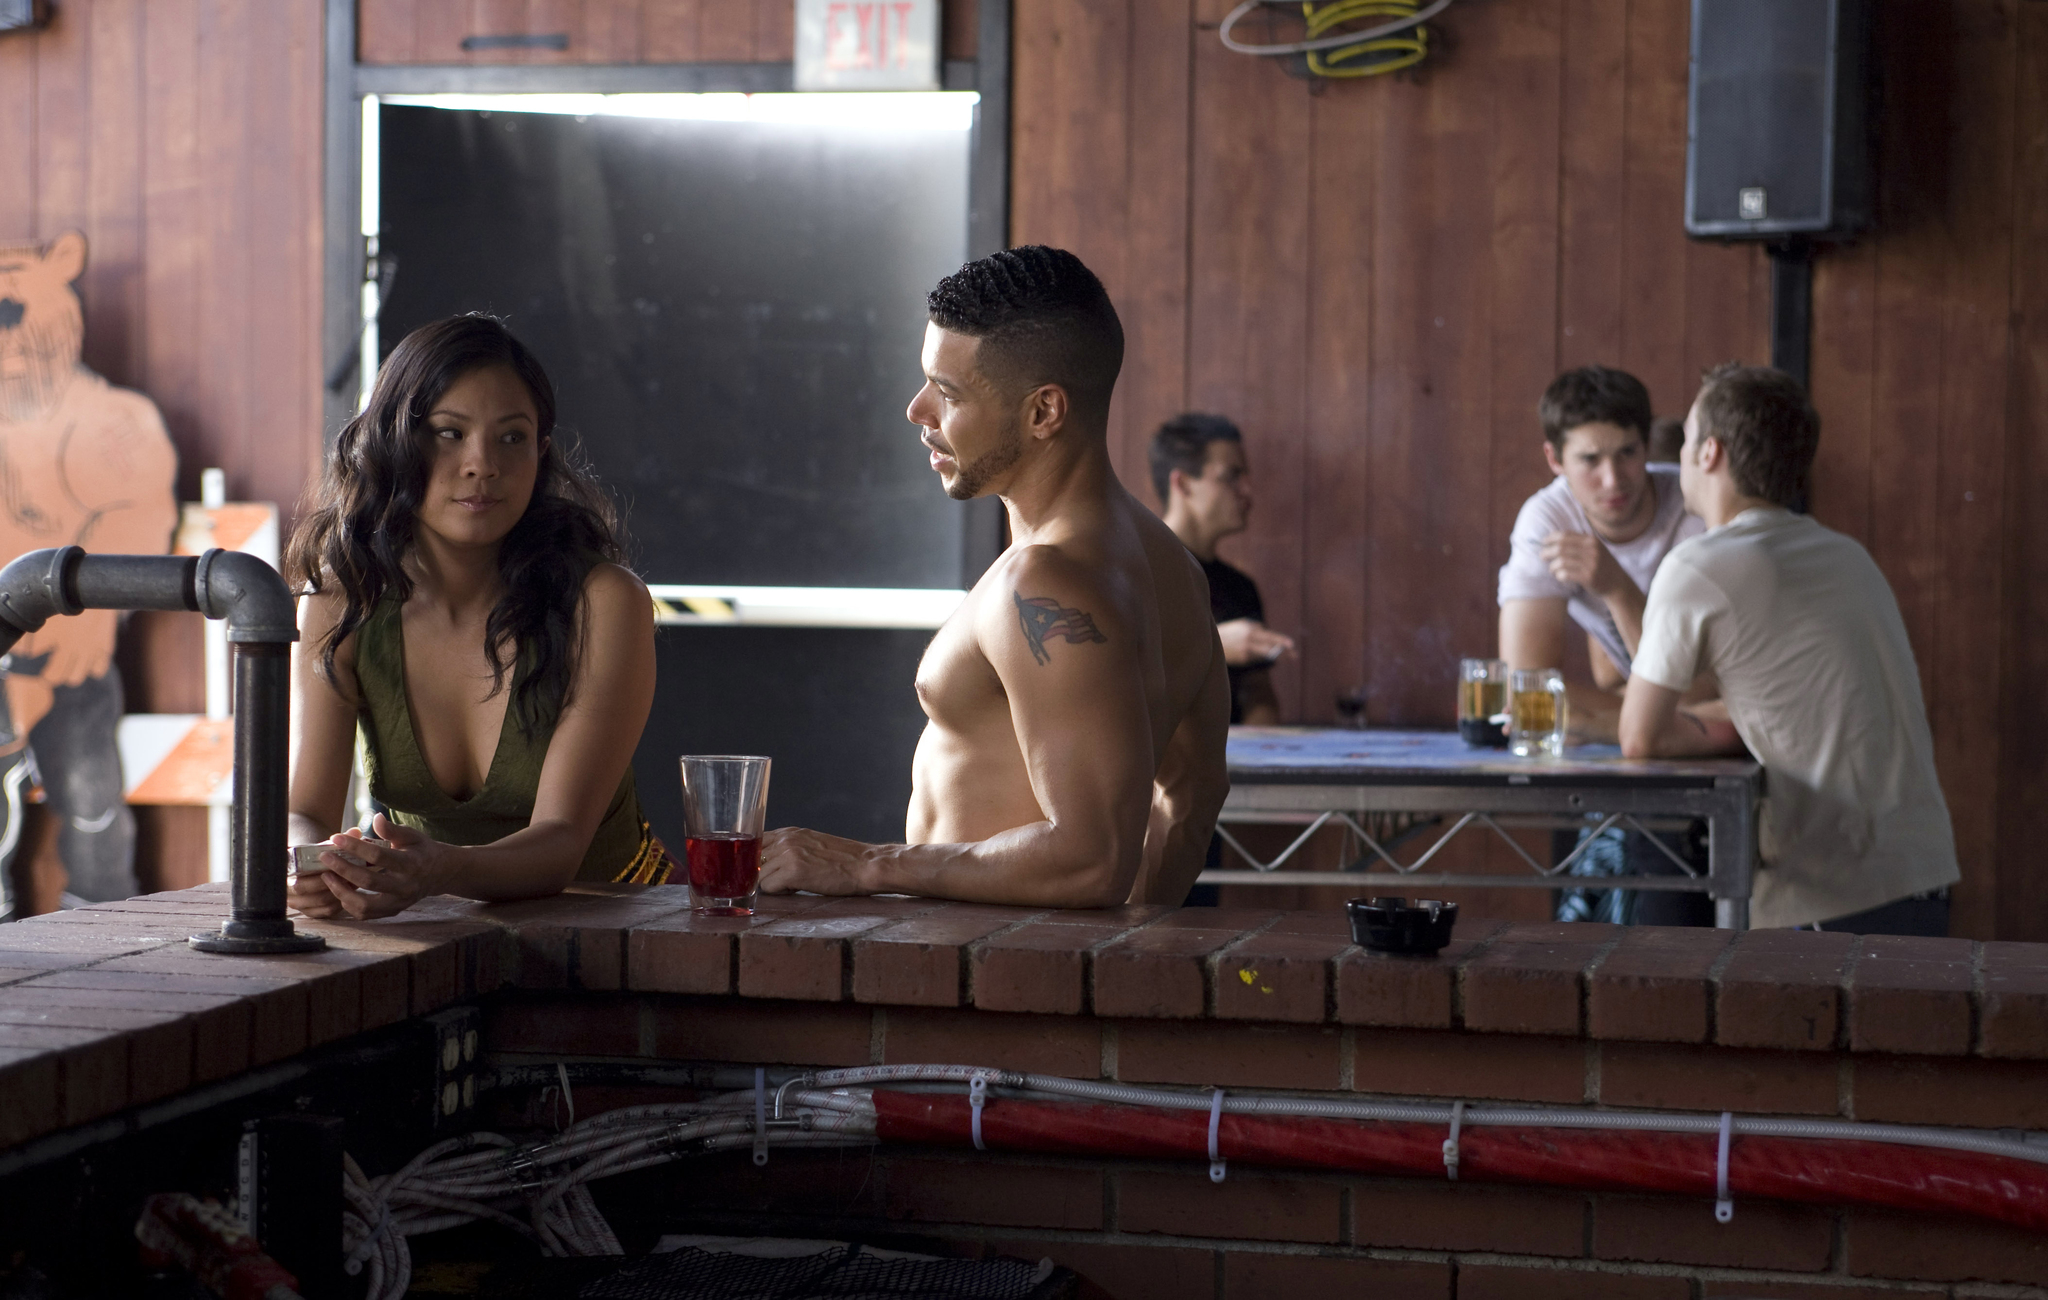 Karin Anna Cheung and Wilson Cruz in The People I've Slept With (2012)